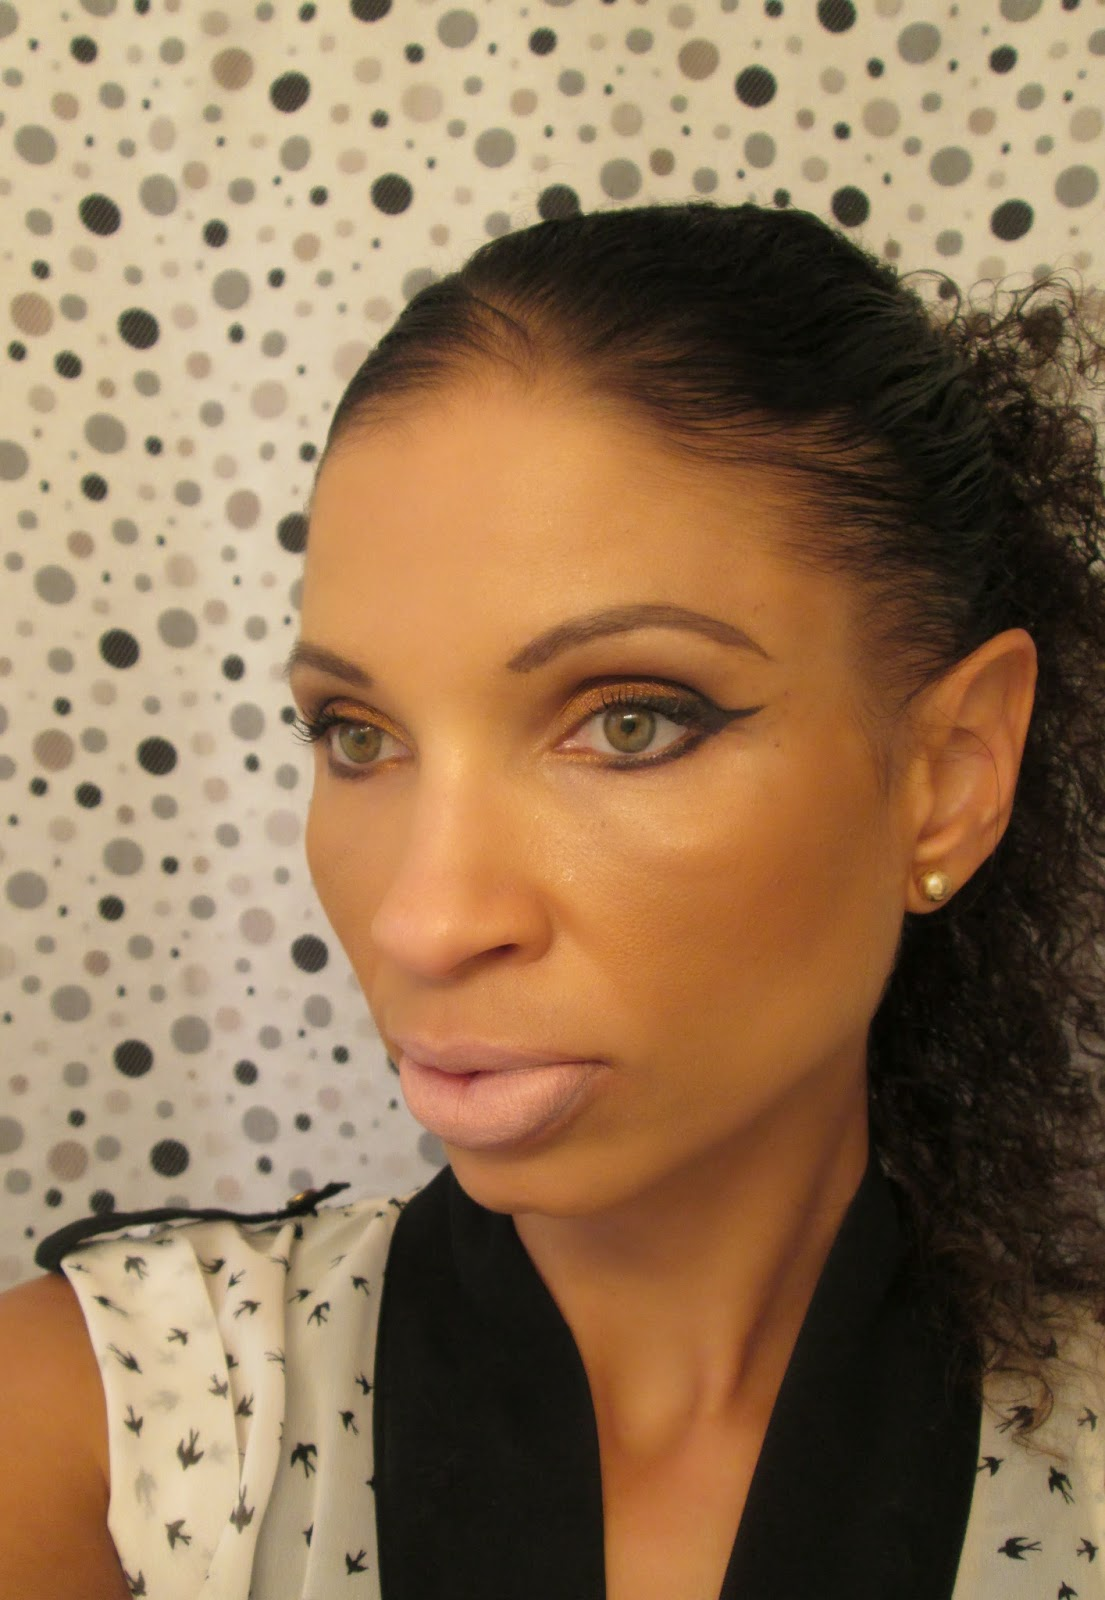 http://chrysalisglam101.blogspot.com/2014/07/fotd-bronze-eyes-and-pinky-nude-lips.html